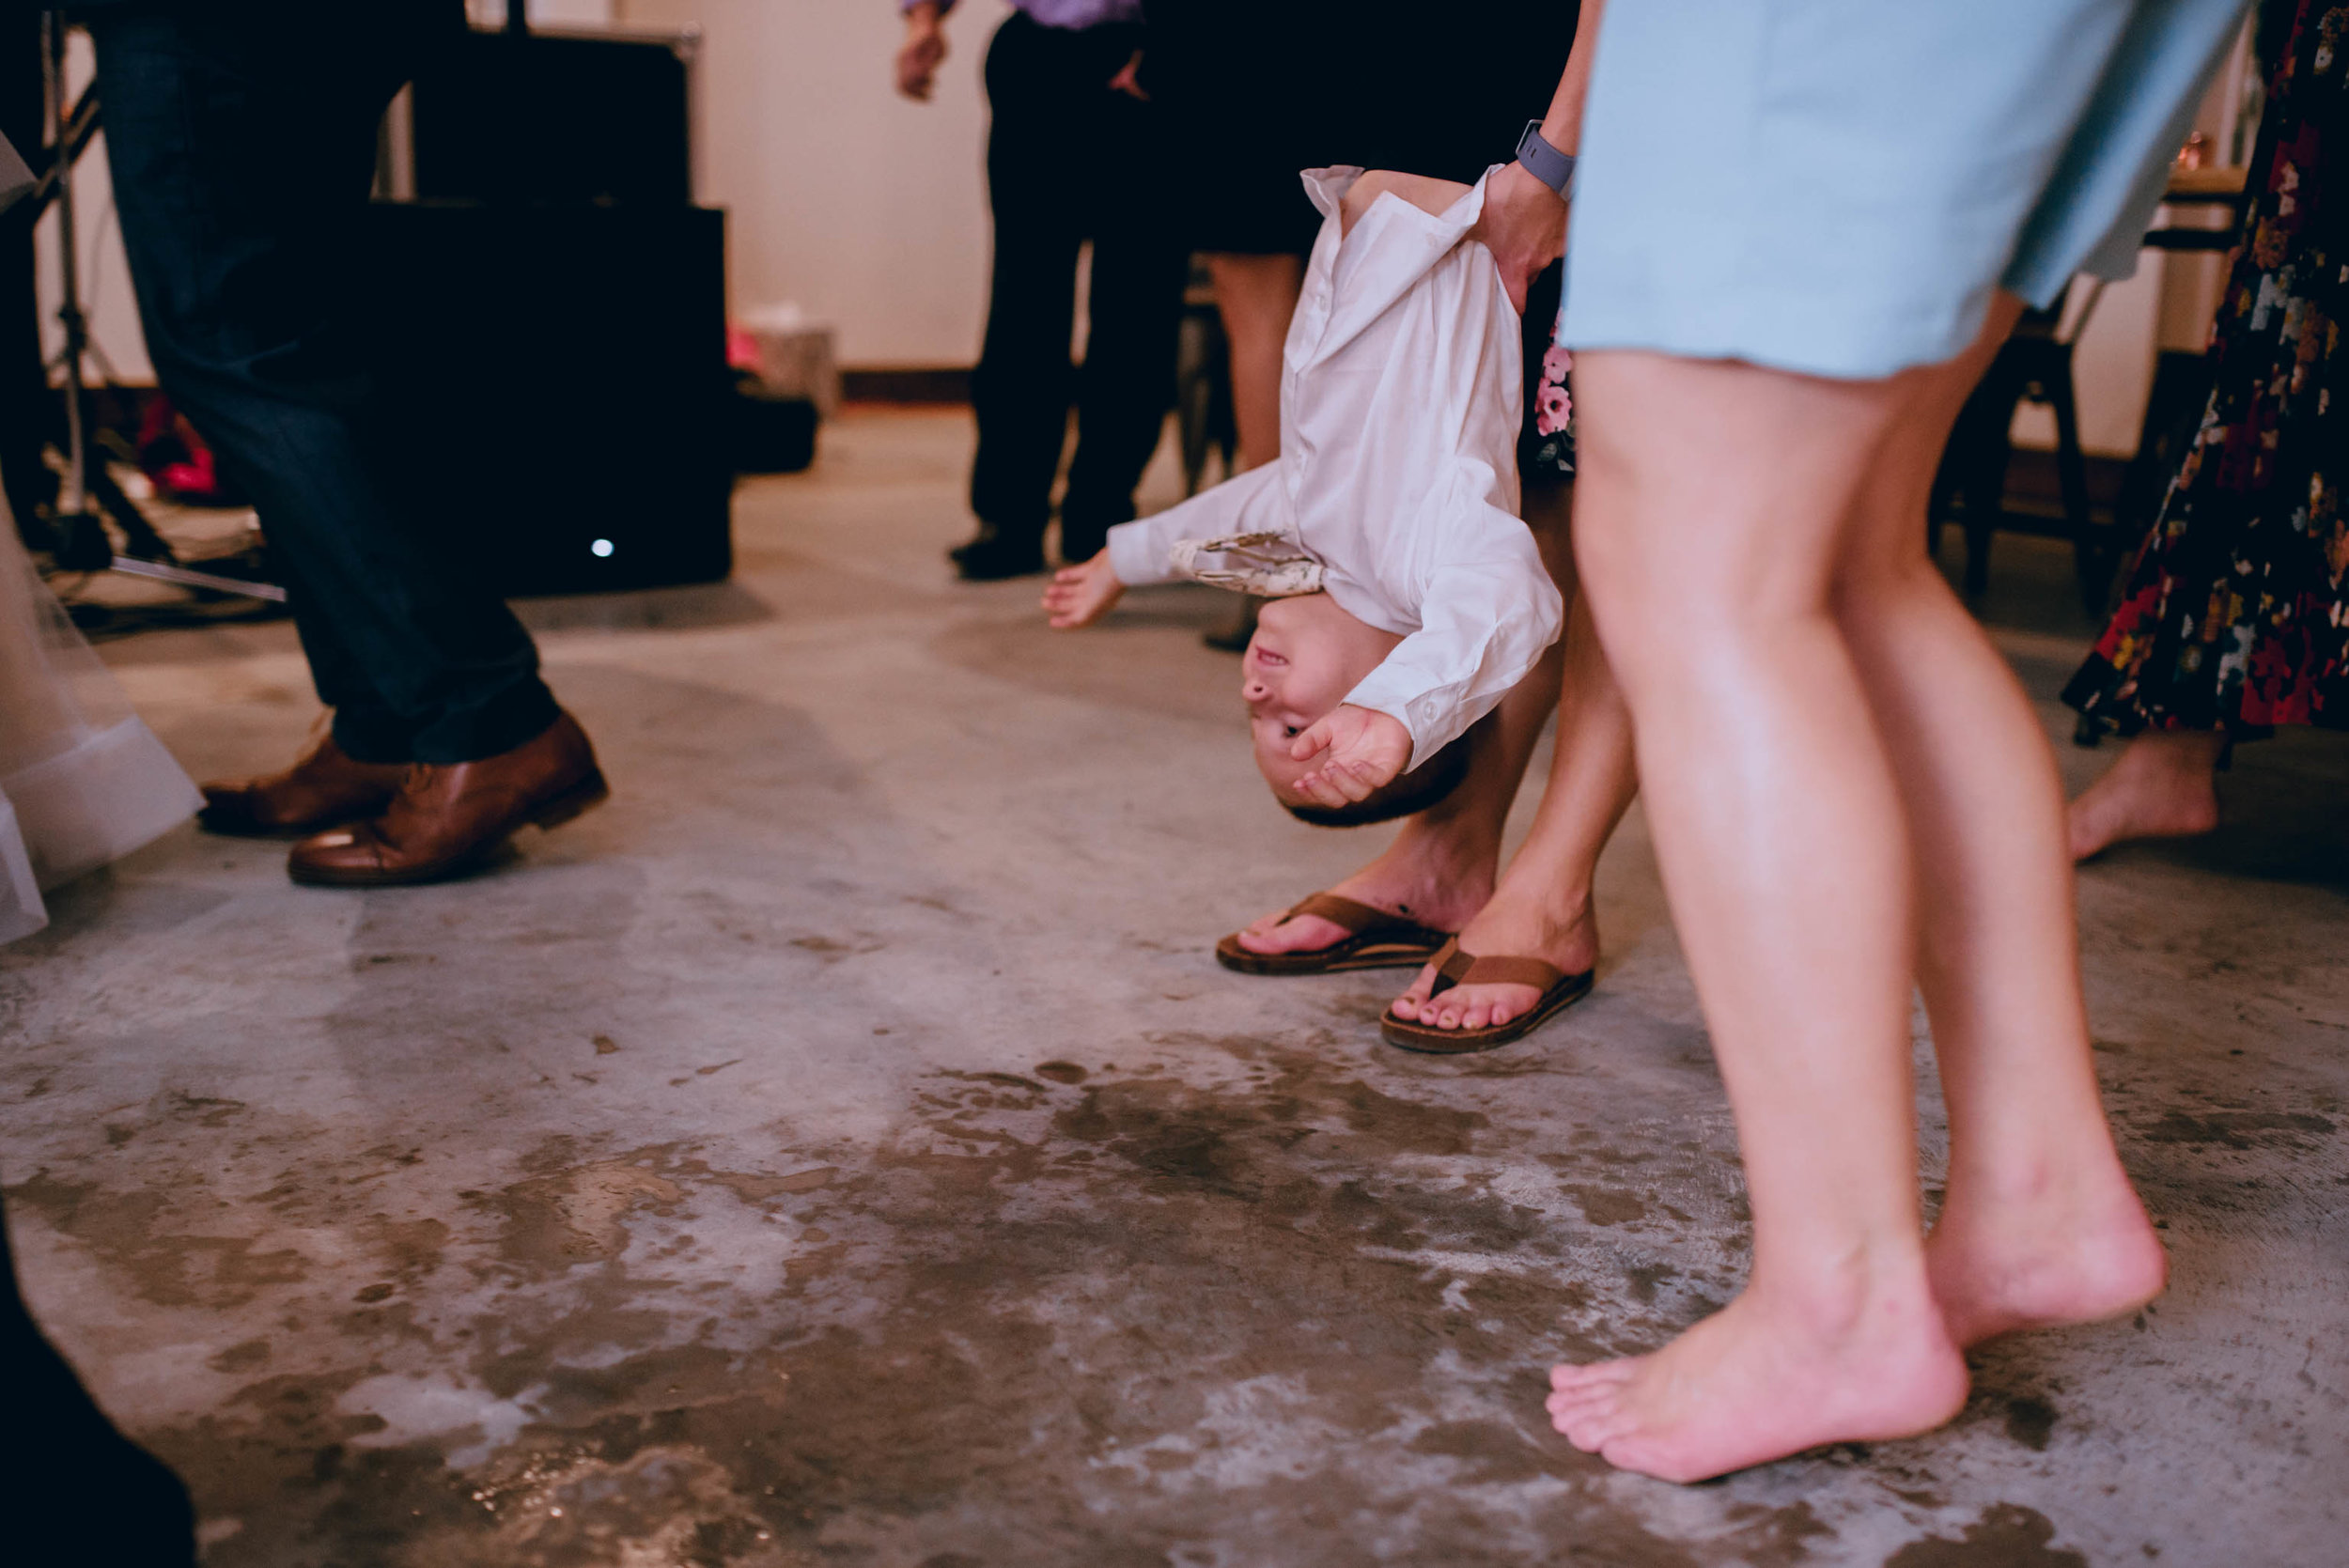 ring bearer being held upside down during dancing at wedding reception